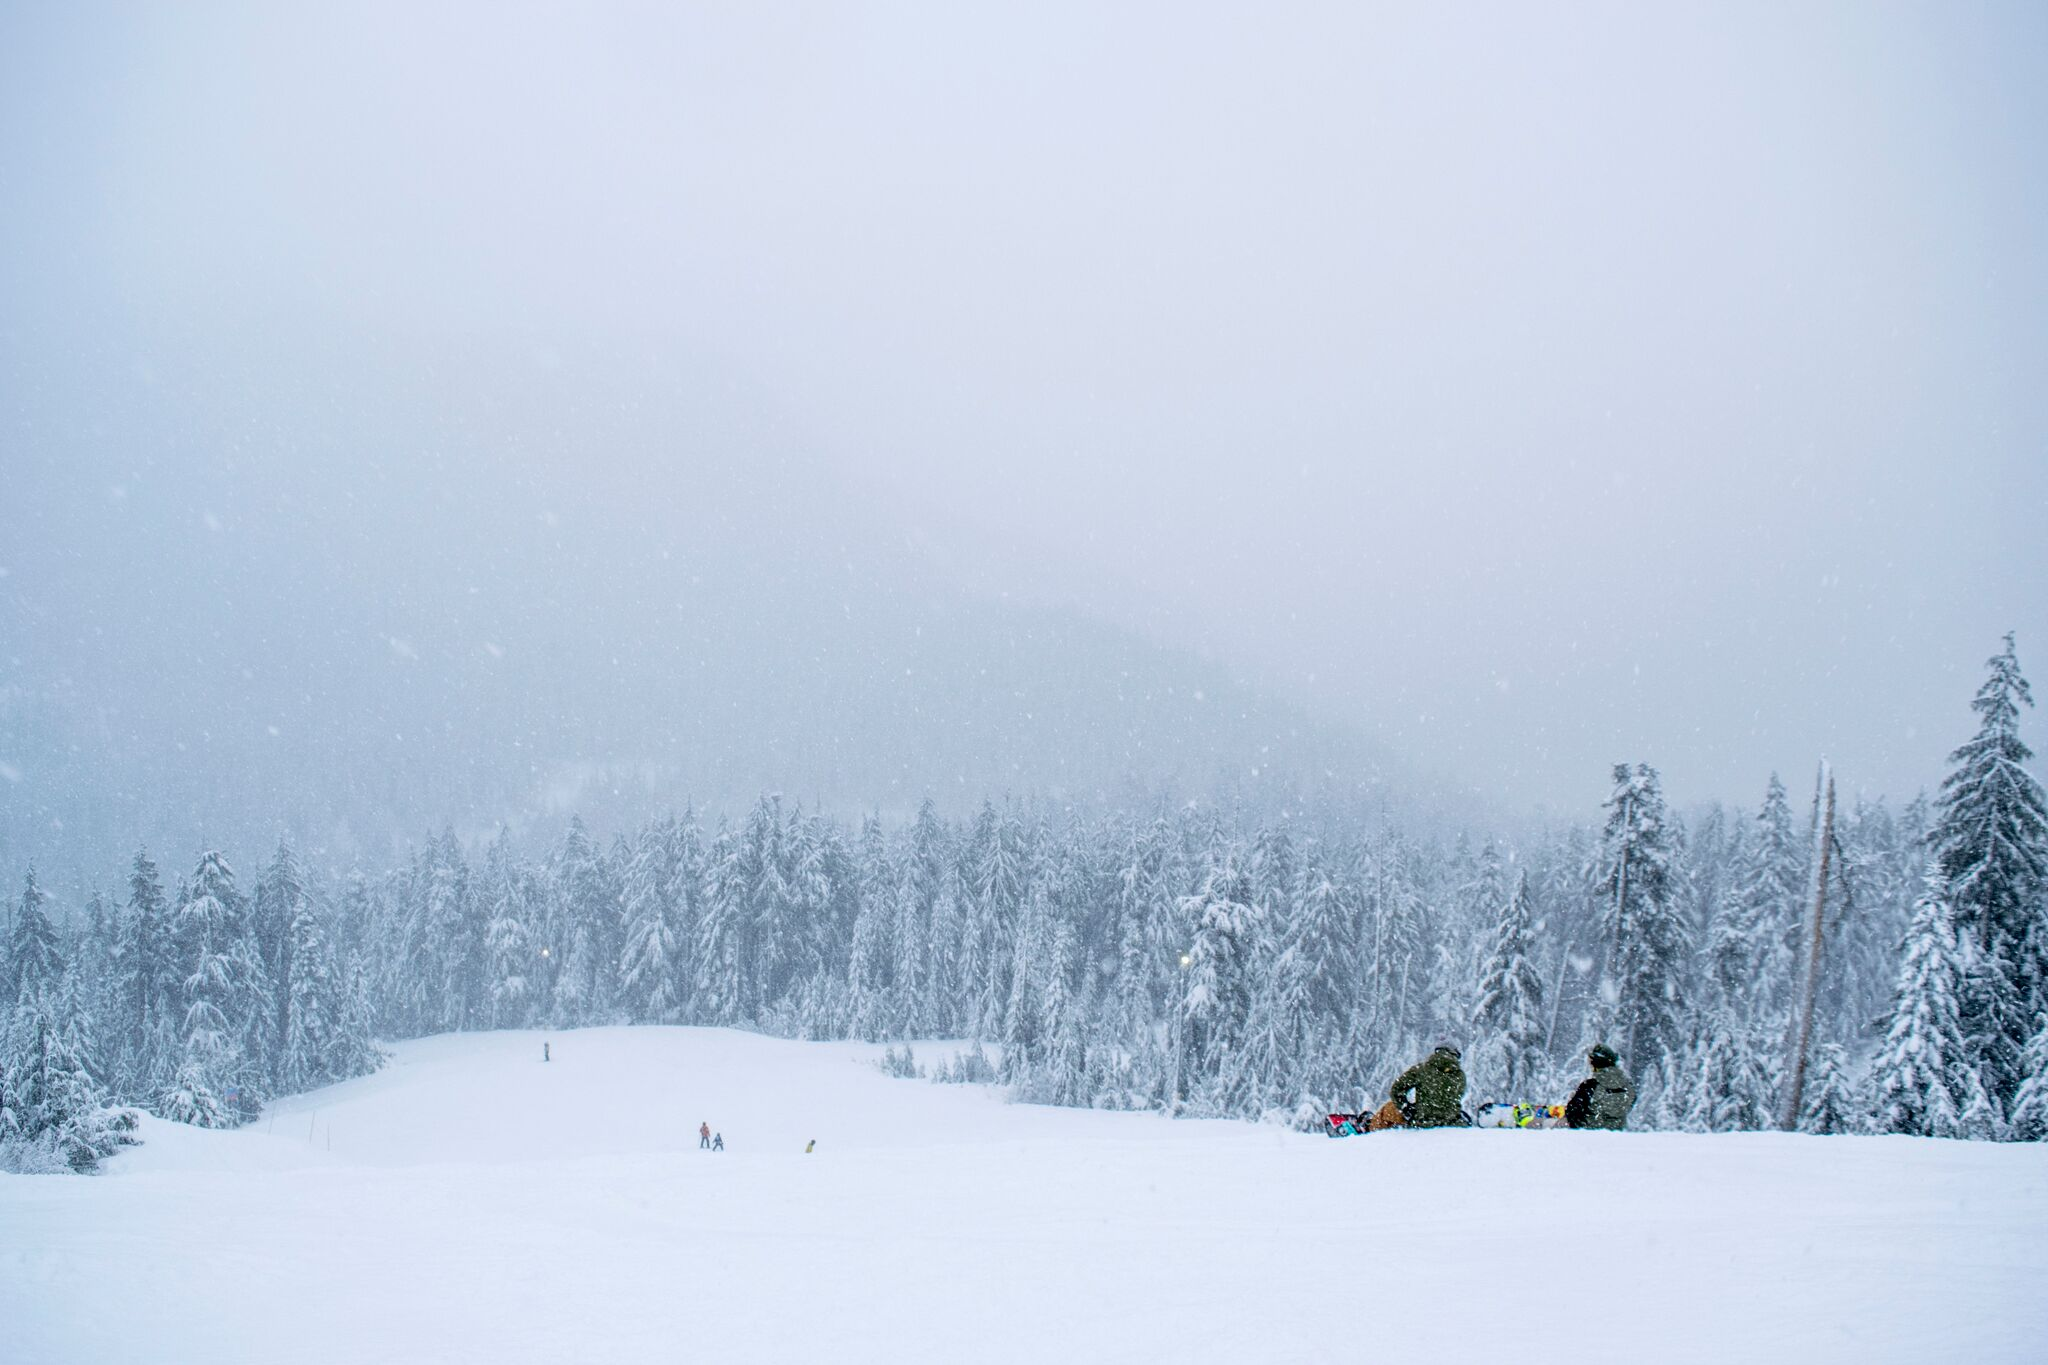 The Lower Mainland is having another great ski season.